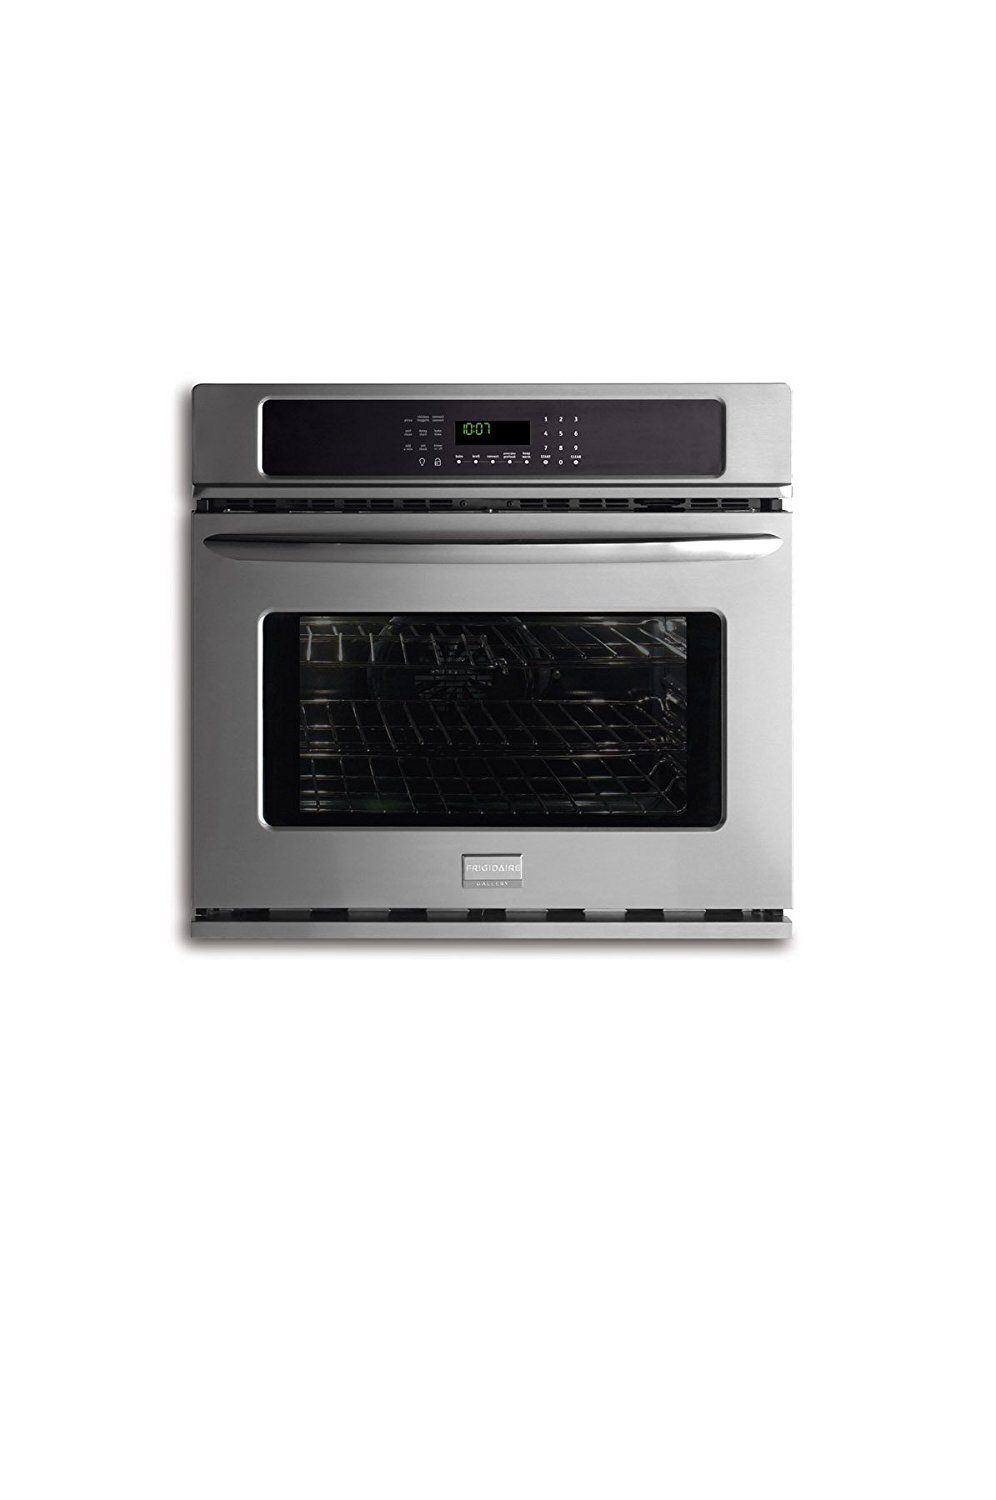 Frigidaire Fgew3065kf Gallery 30 Stainless Steel Electric Single Wall Oven Convection Click Image To Review More Details